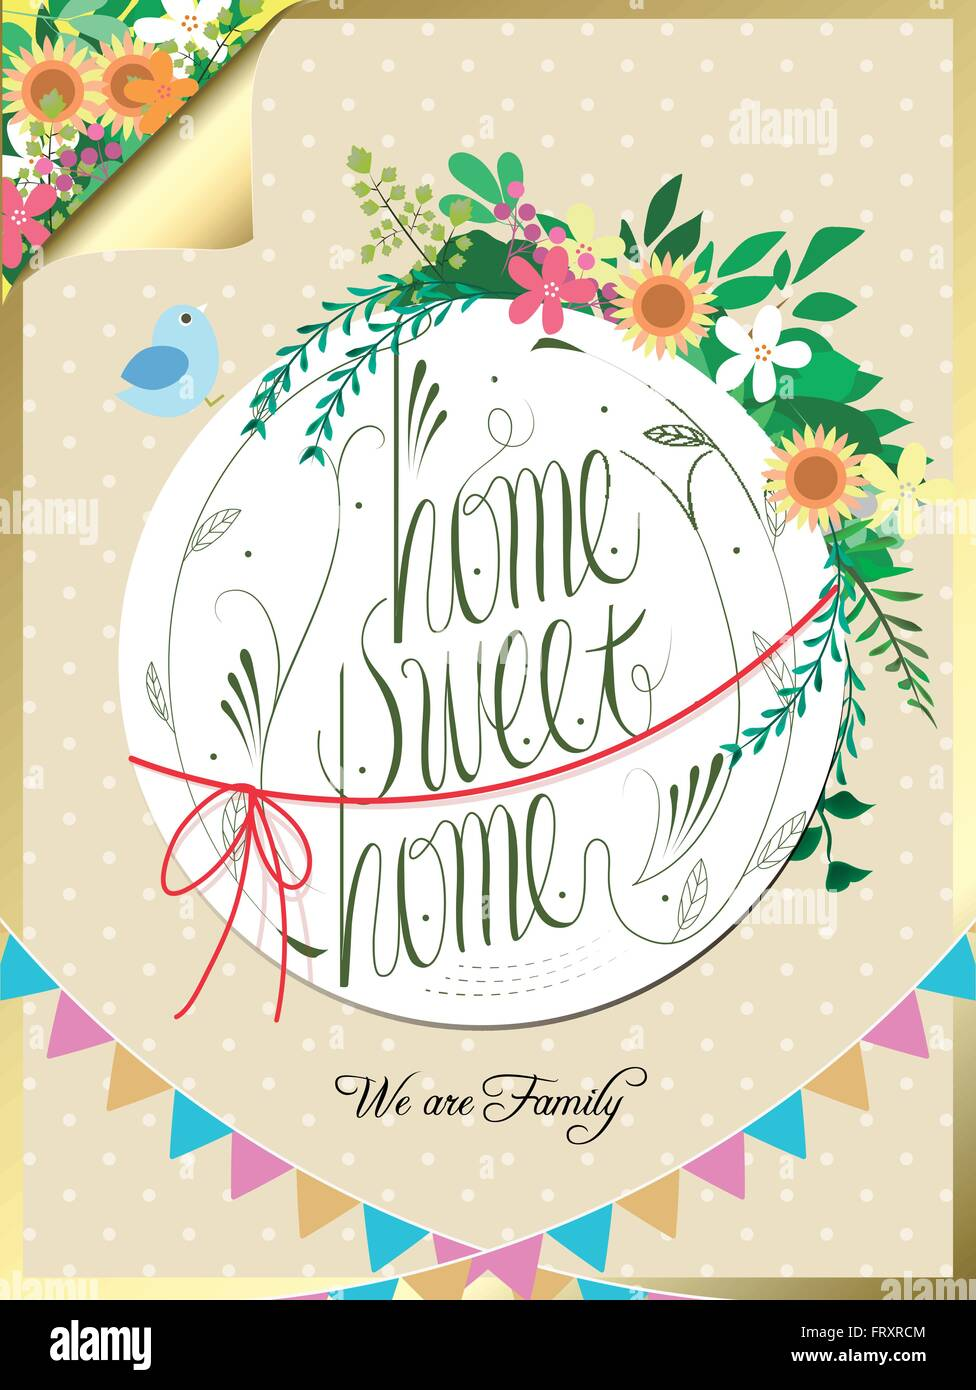 lovely home sweet home calligraphy poster design with floral elements - Stock Vector